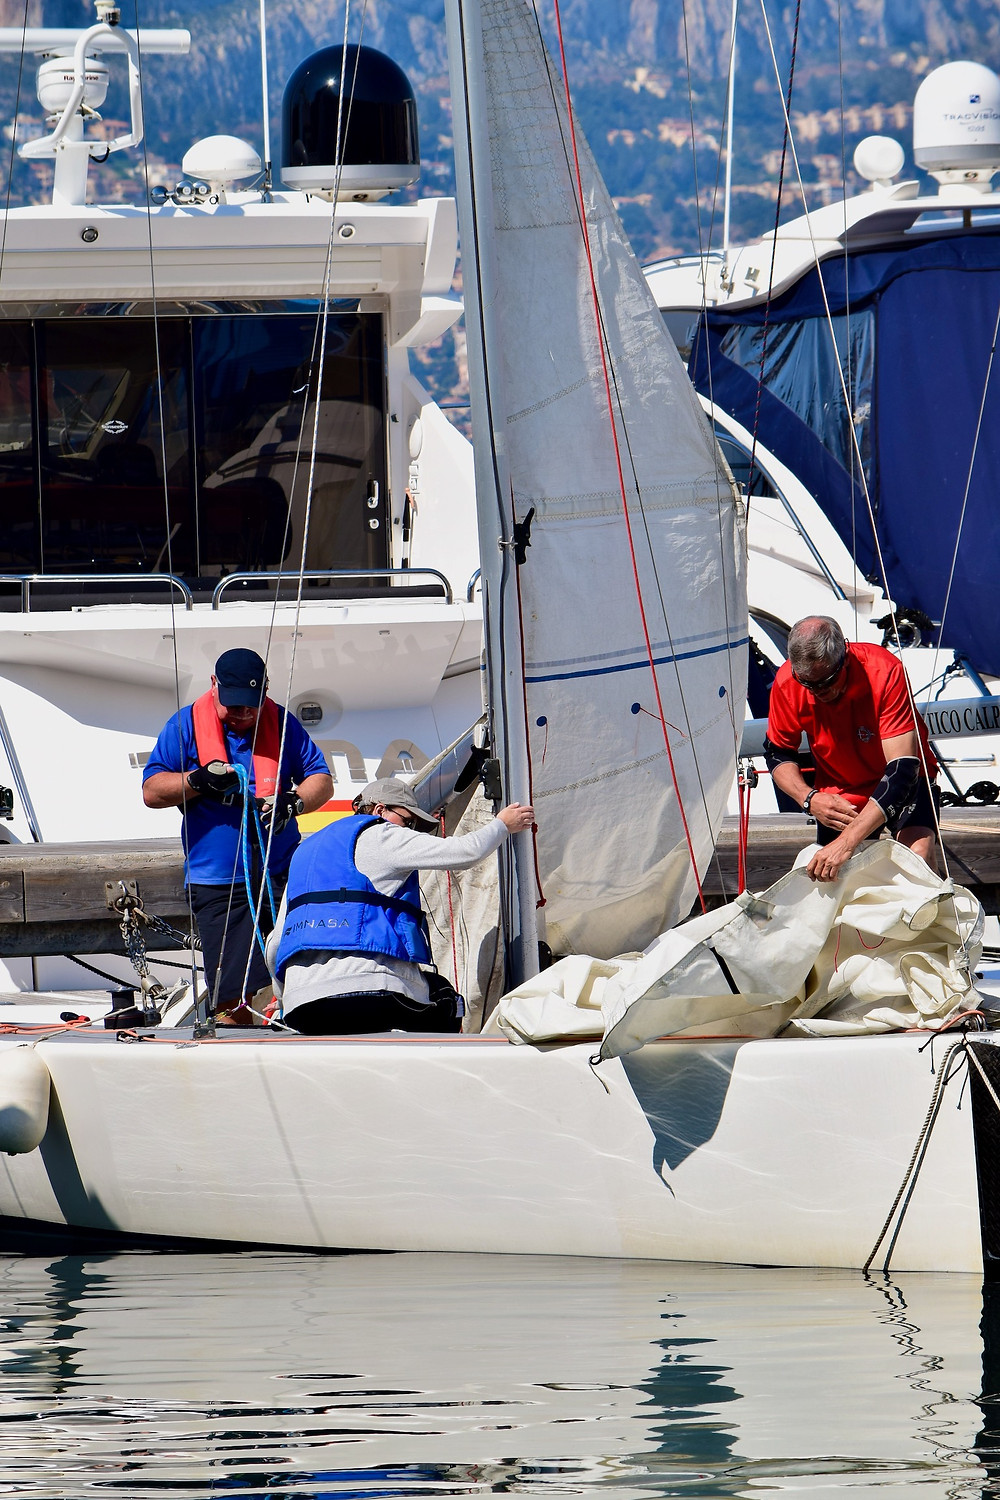 Rigging the yacht, a TOM28 prior to setting sail.